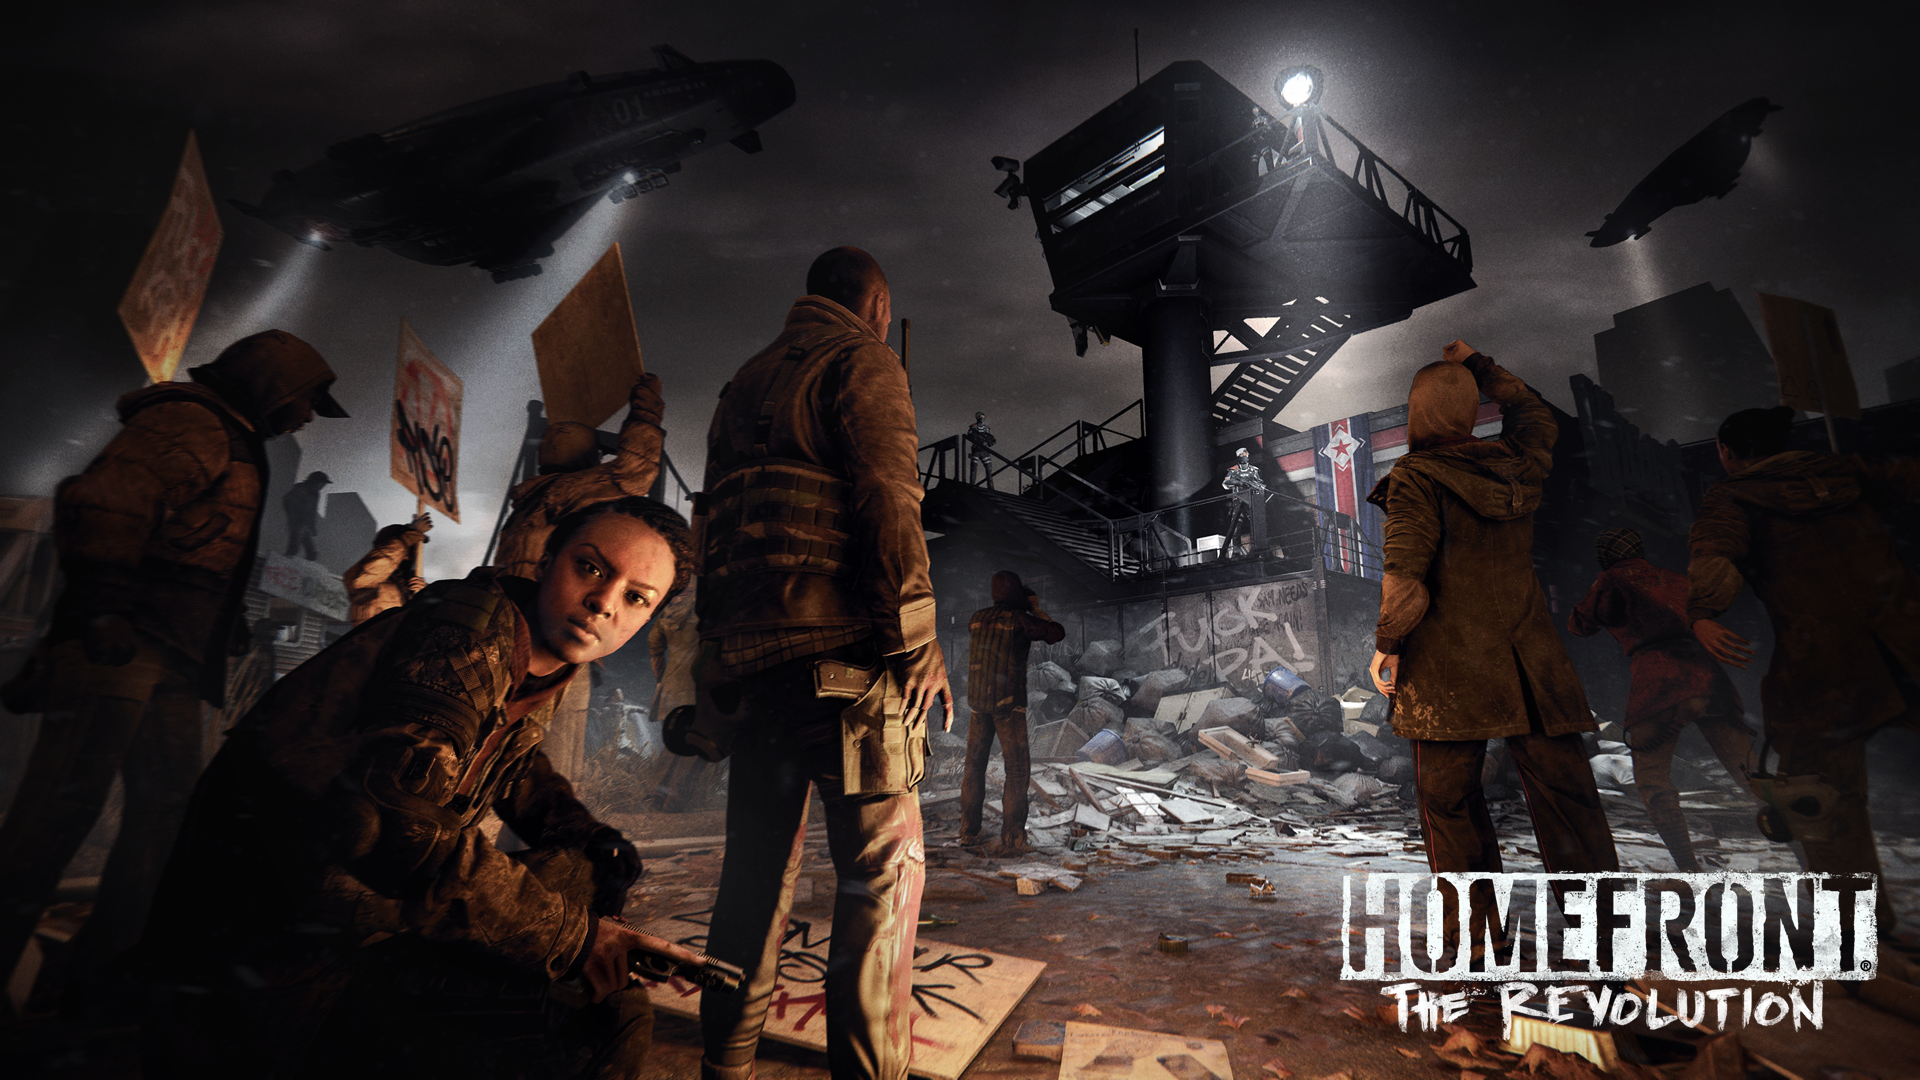 Homefront: The Revolution game